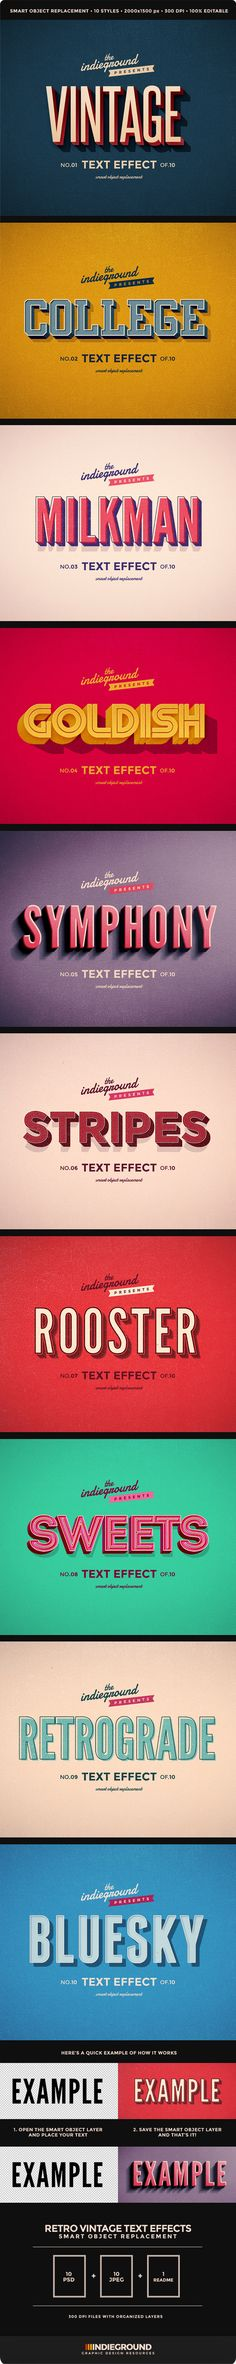 Retro Vintage Text Effects for Photoshop. Download here: http://graphicriver.net/item/retro-vintage-text-effects/8095568?ref=ksioks